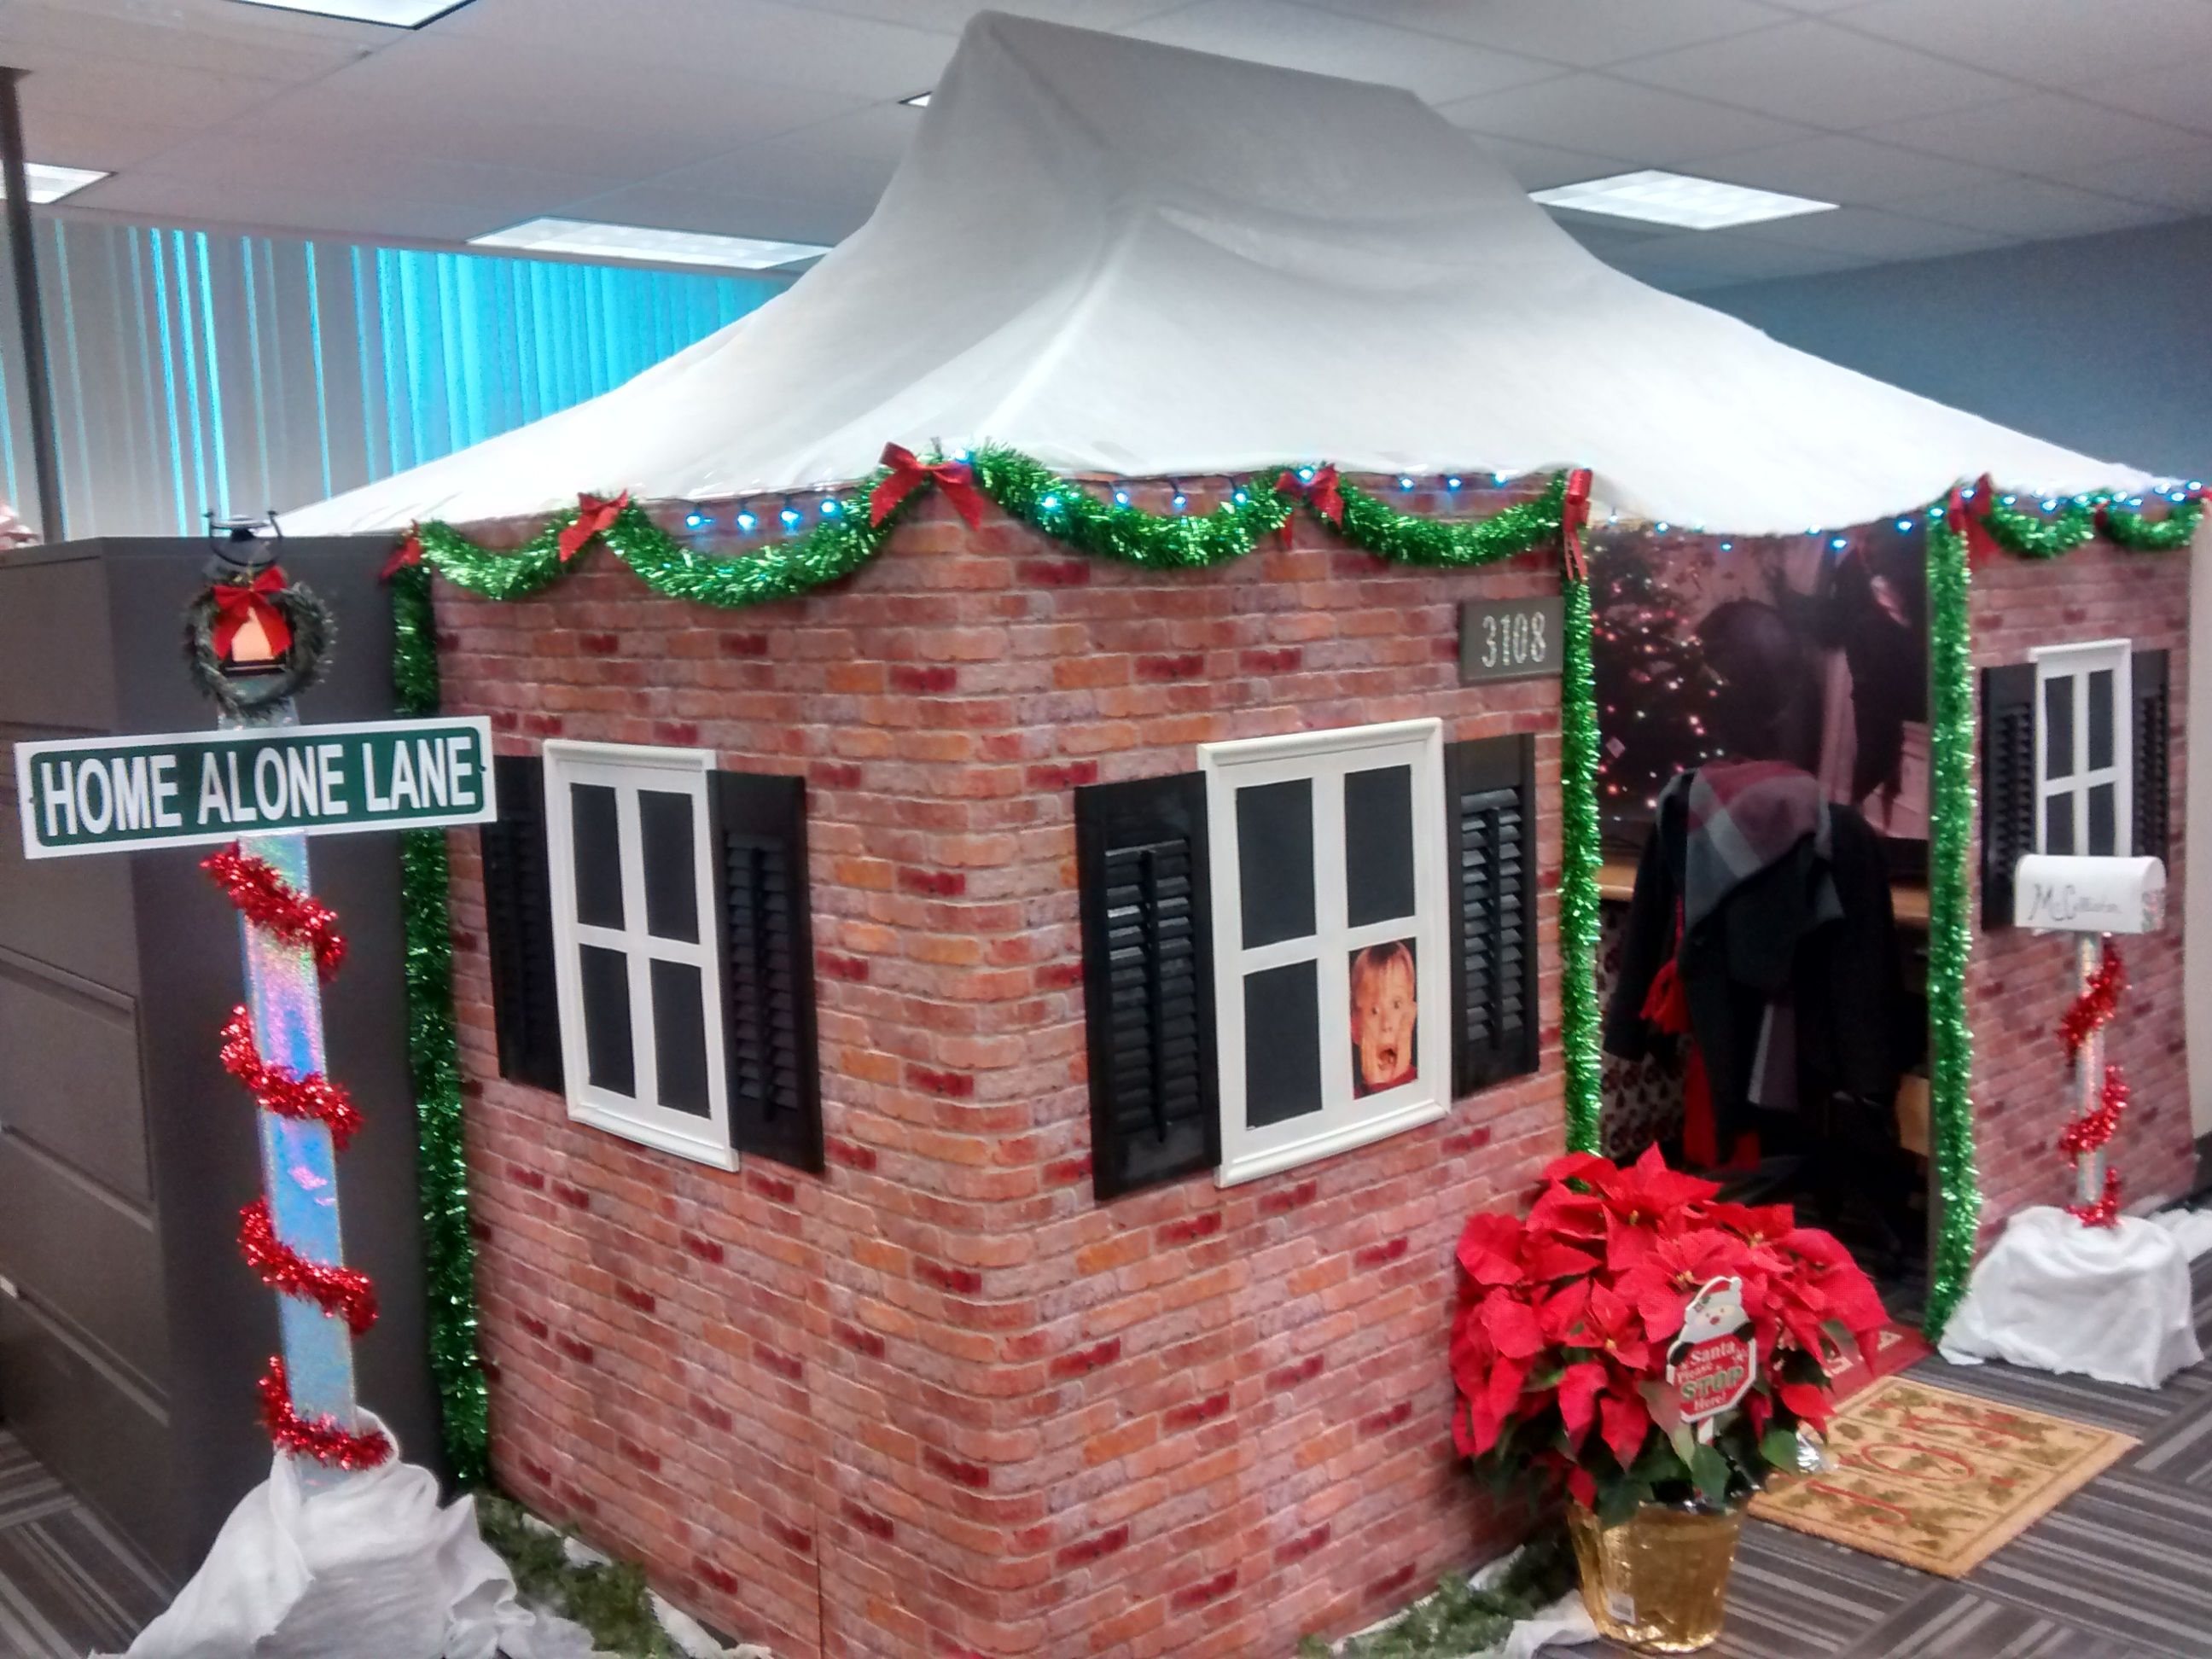 Home Alone Office Cubicle Christmas Cubicle Decorations Office Christmas Decorations Christmas Door Decorations